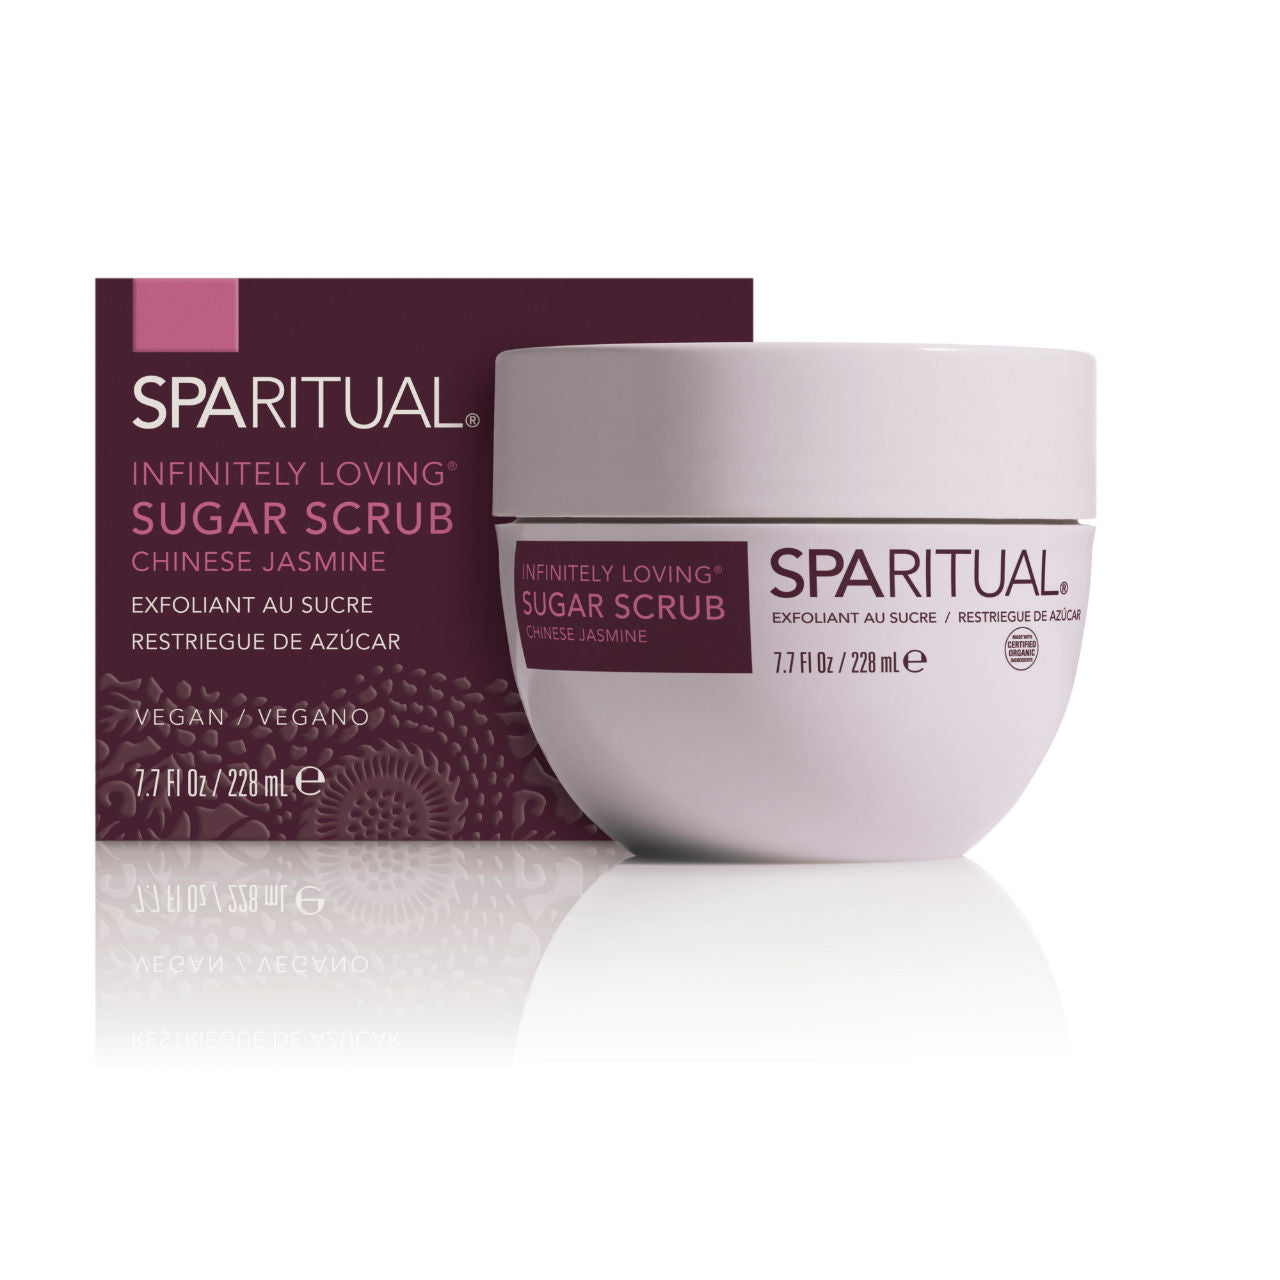 SPARITUAL Infinitely Loving Sugar Scrub Box